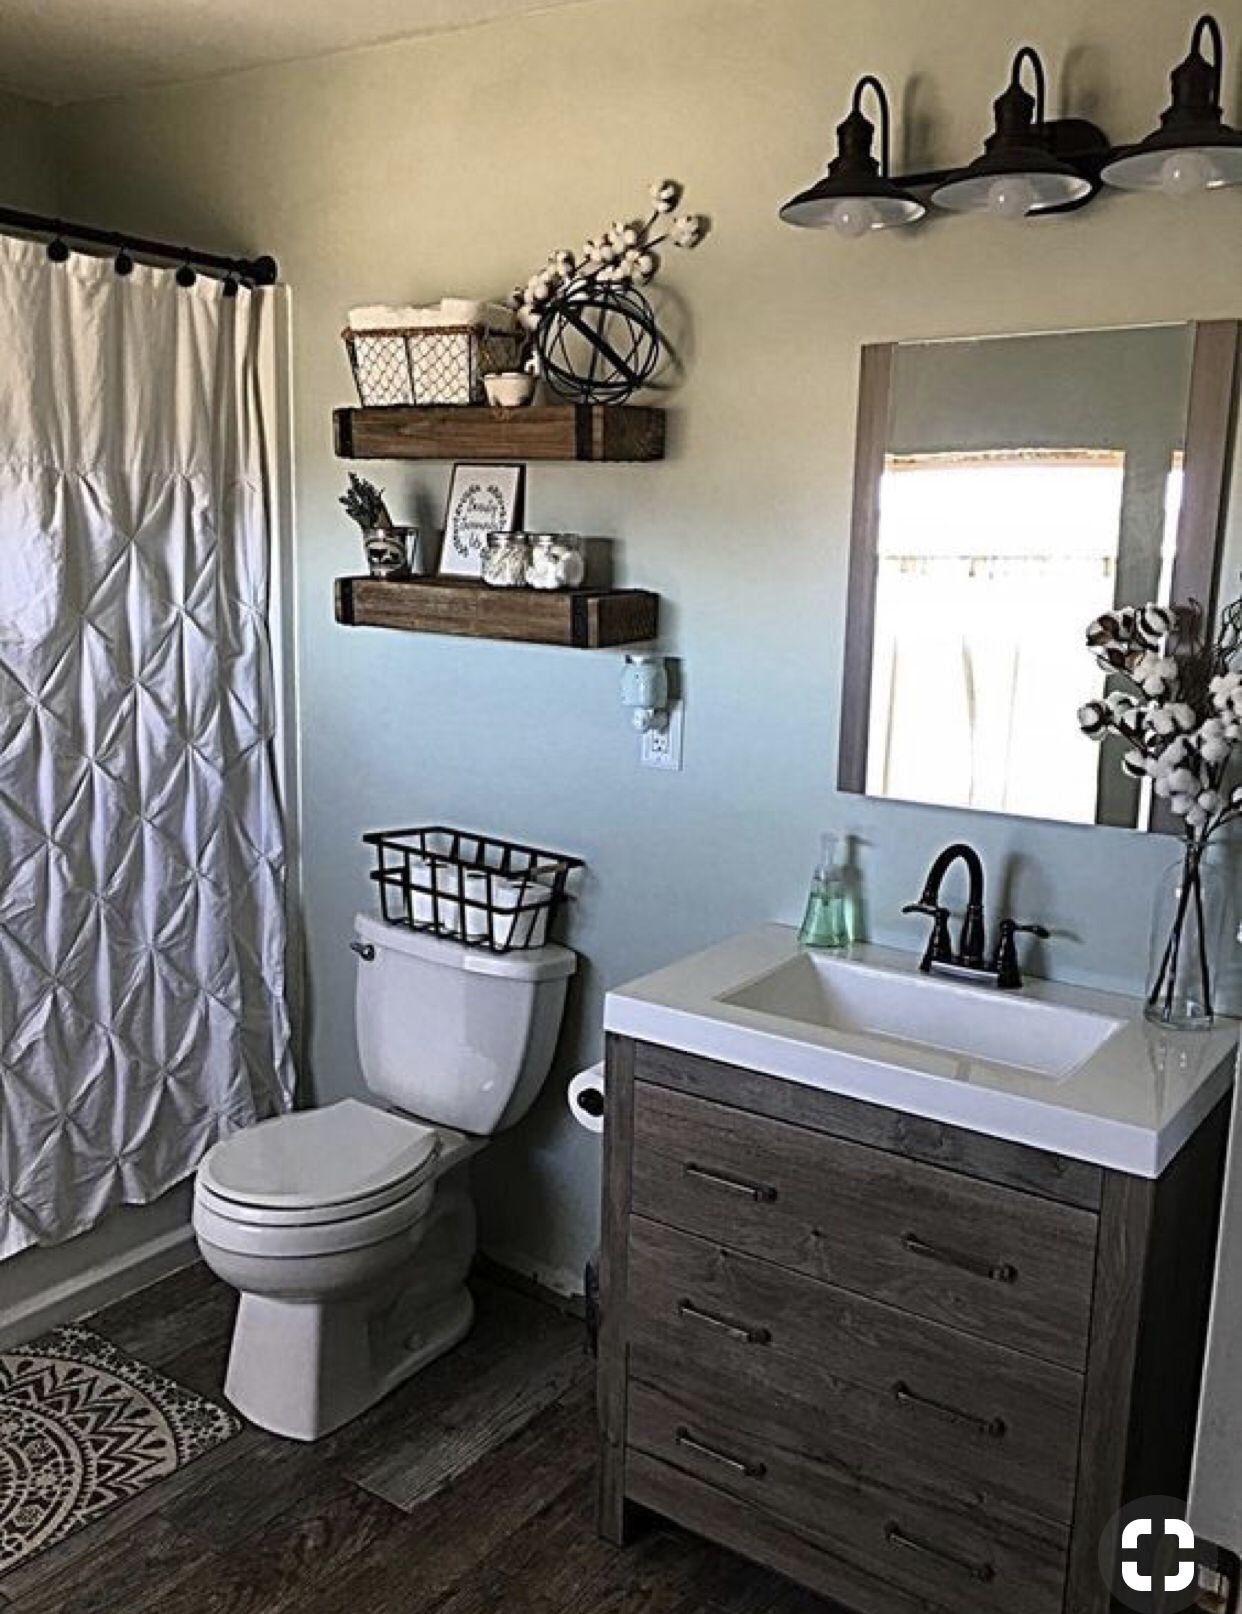 Masterbathroom Bathroom Makeovers On A Budget Small Bathroom Decor Small Bathroom Remodel